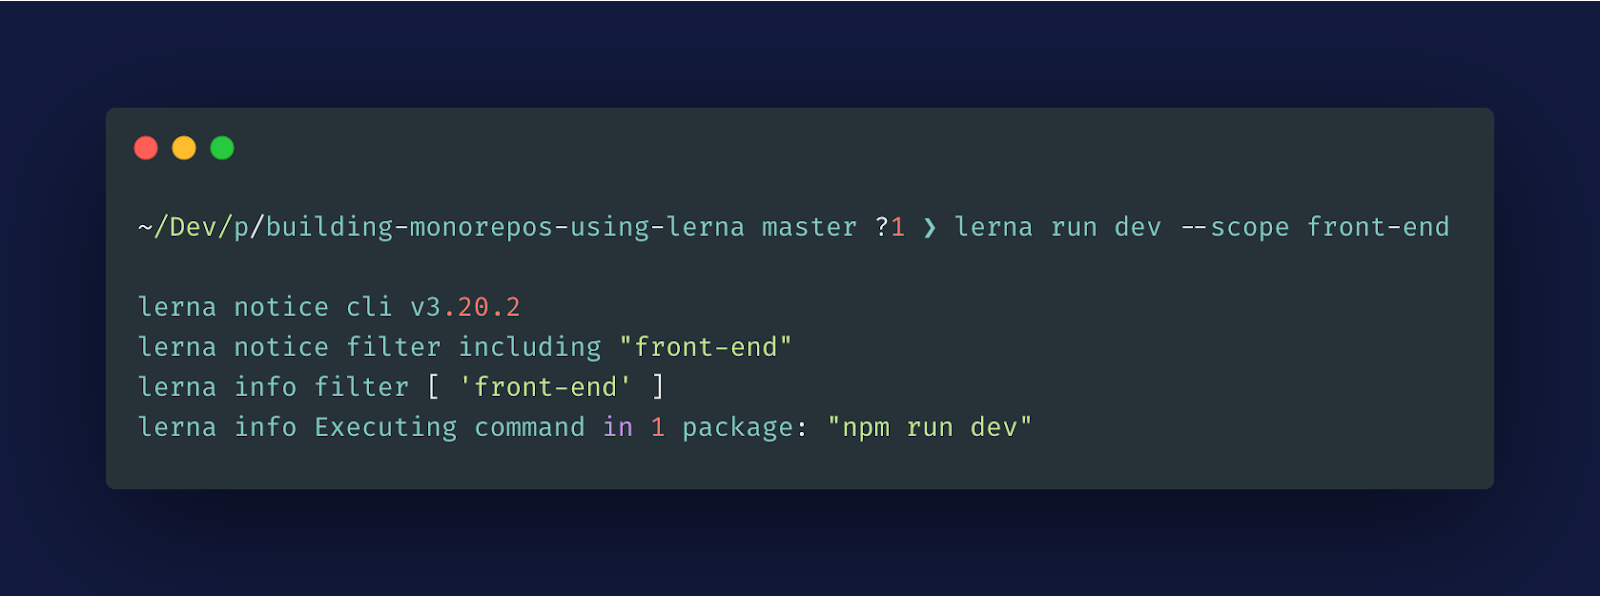 lerna single package command